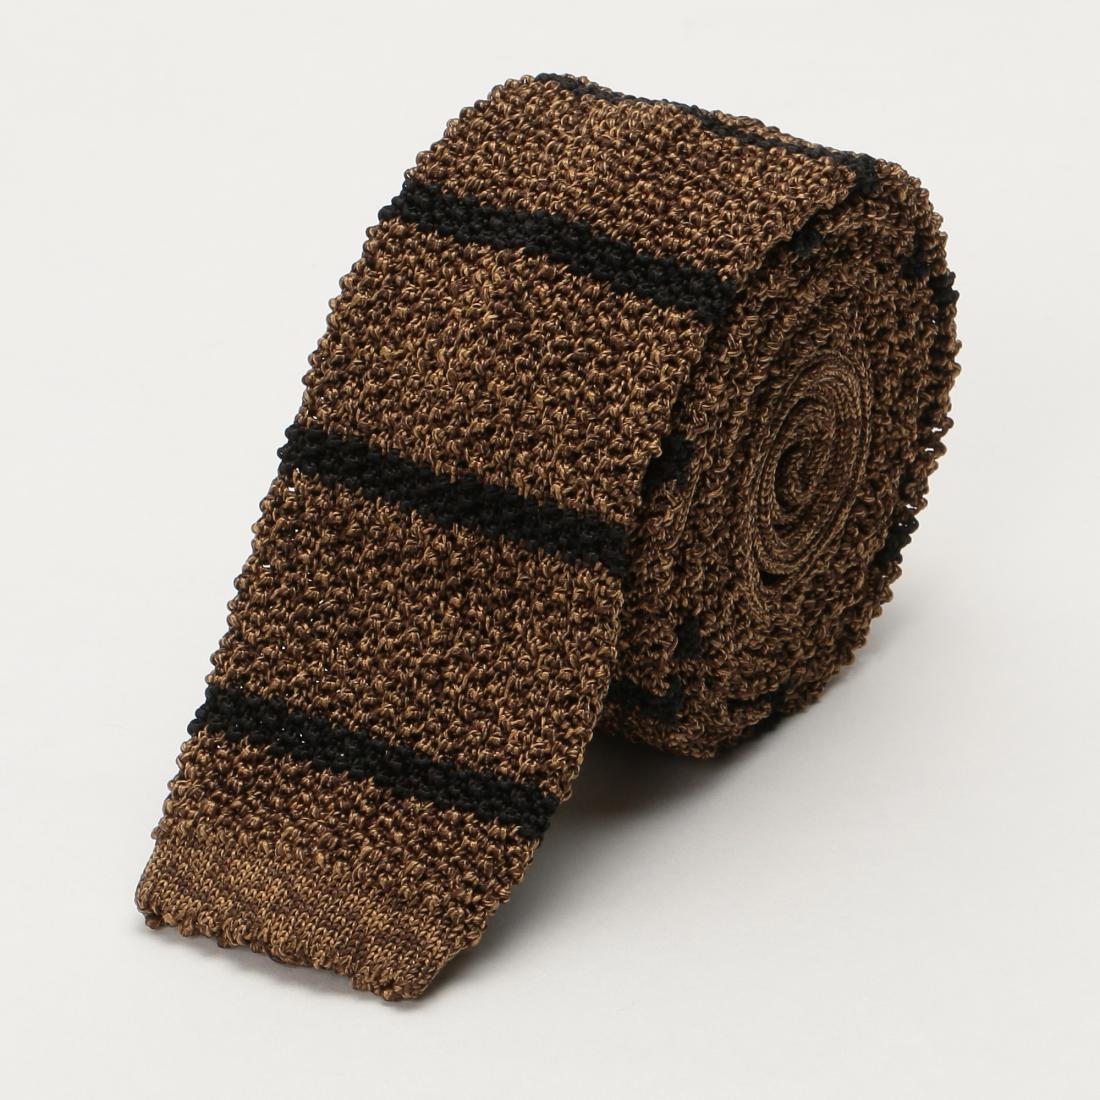 Barneys New York Silk Stripe Knit Tie 1222738: Brown